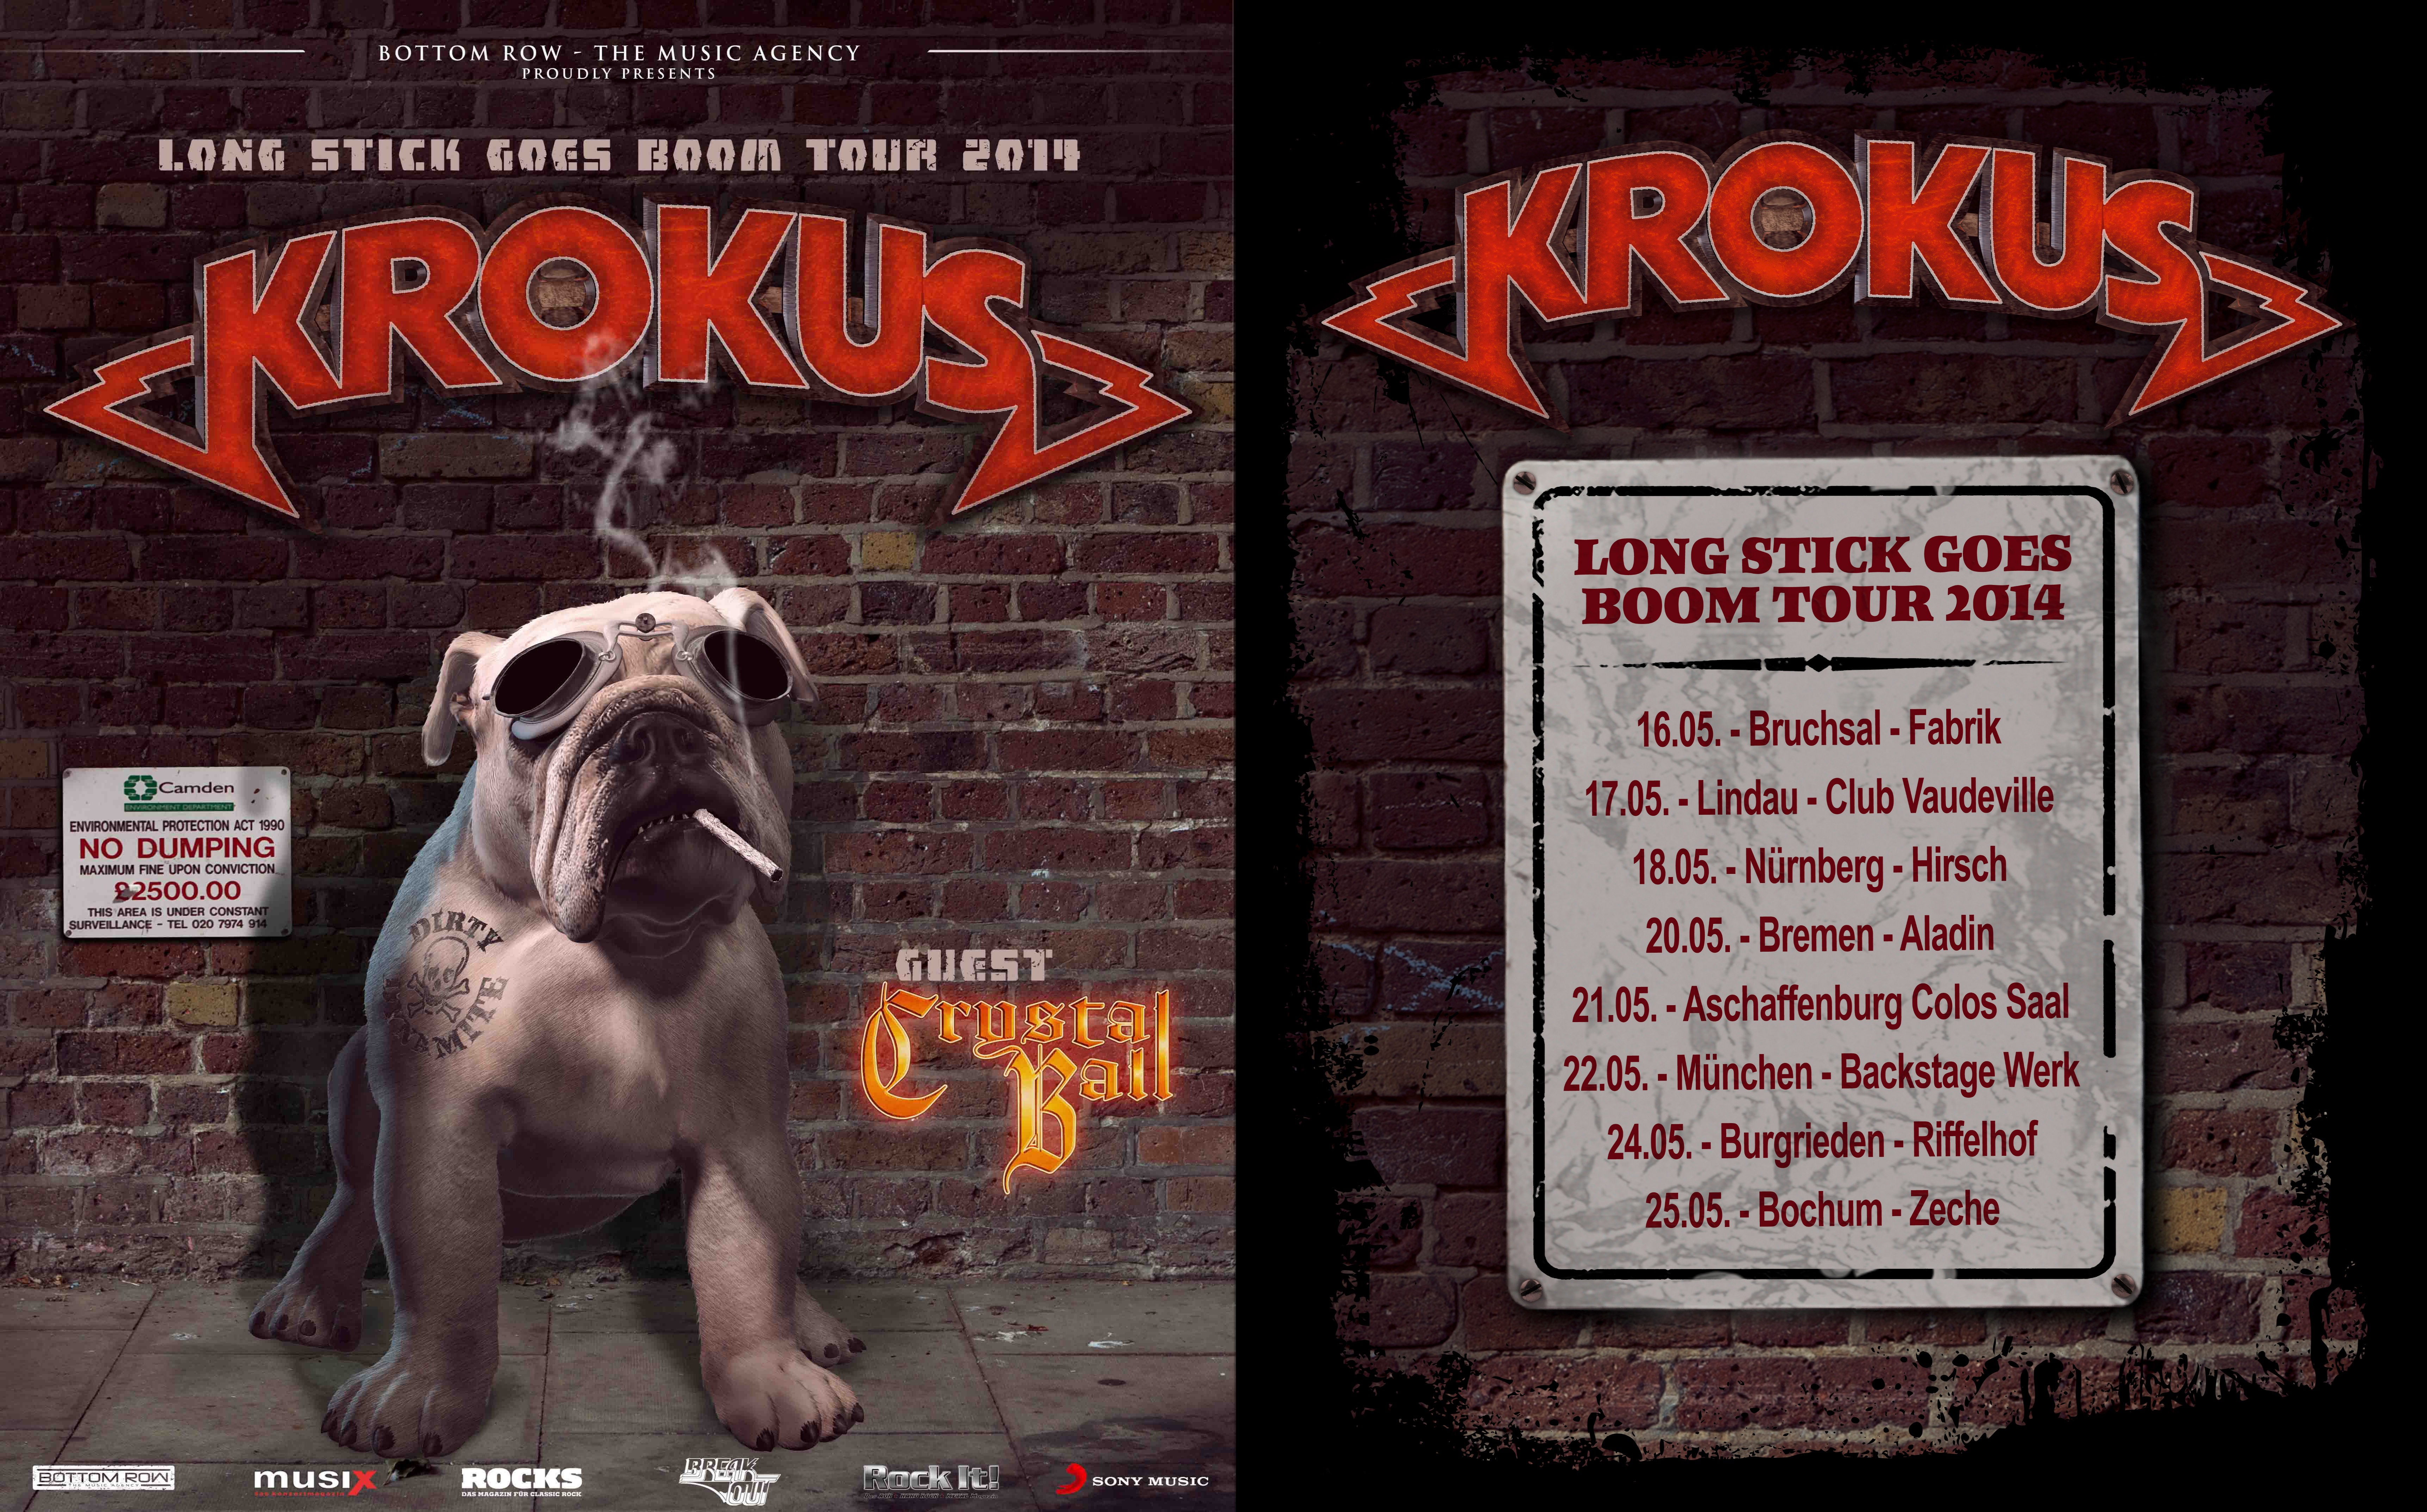 German 'Long Stick Goes Boom' Tour 2014